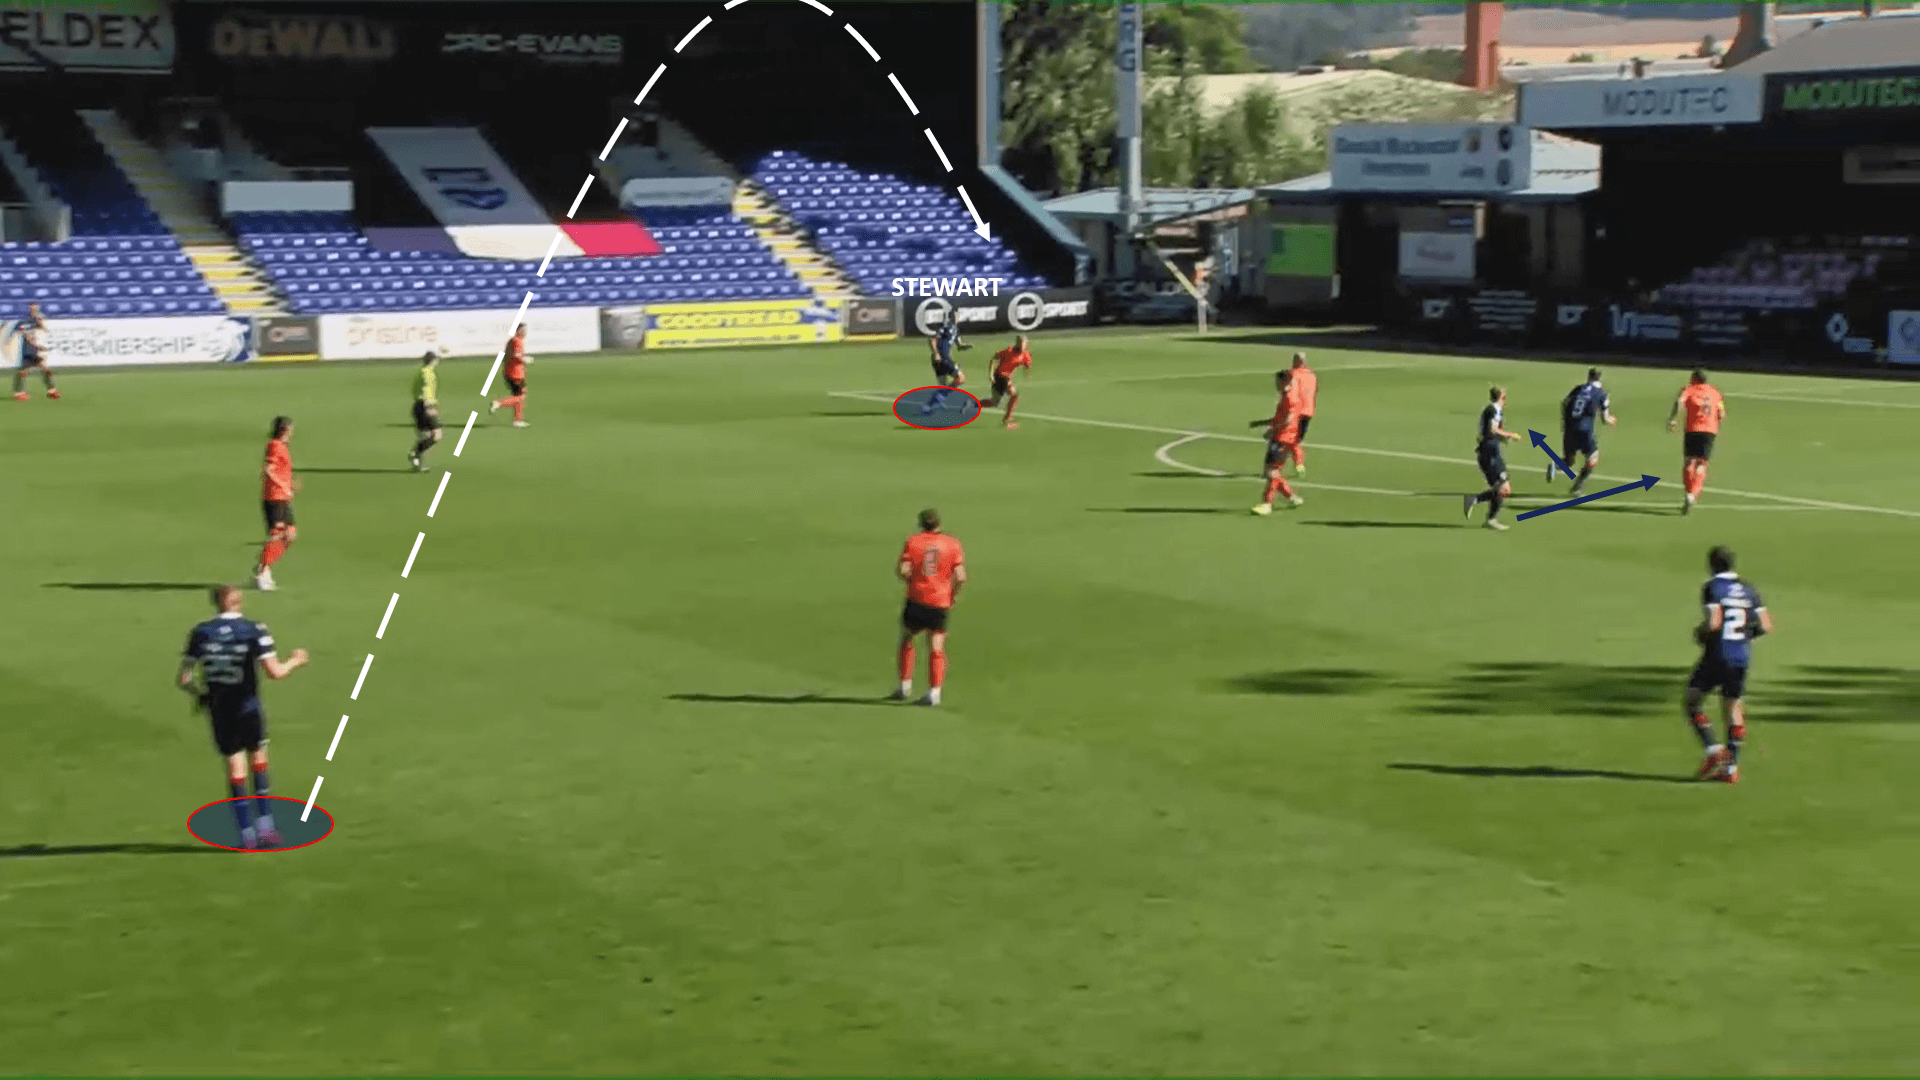 Scottish Premiership 2020/21 : Ross County vs Dundee United - tactical analysis tactics